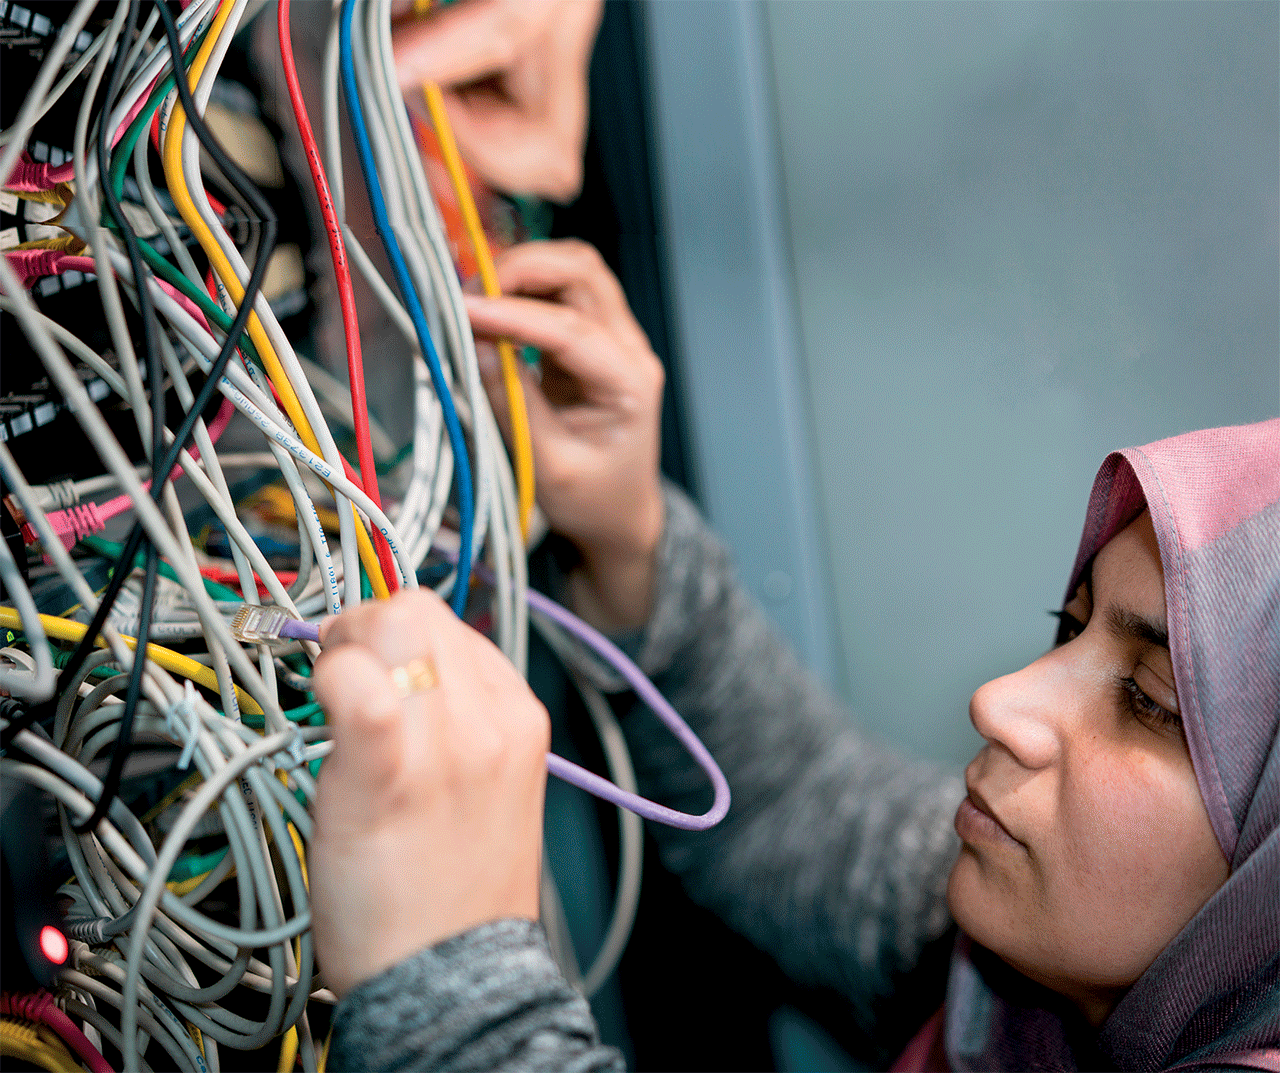 Creating a Tech Community to Aid Refugees in Crisis